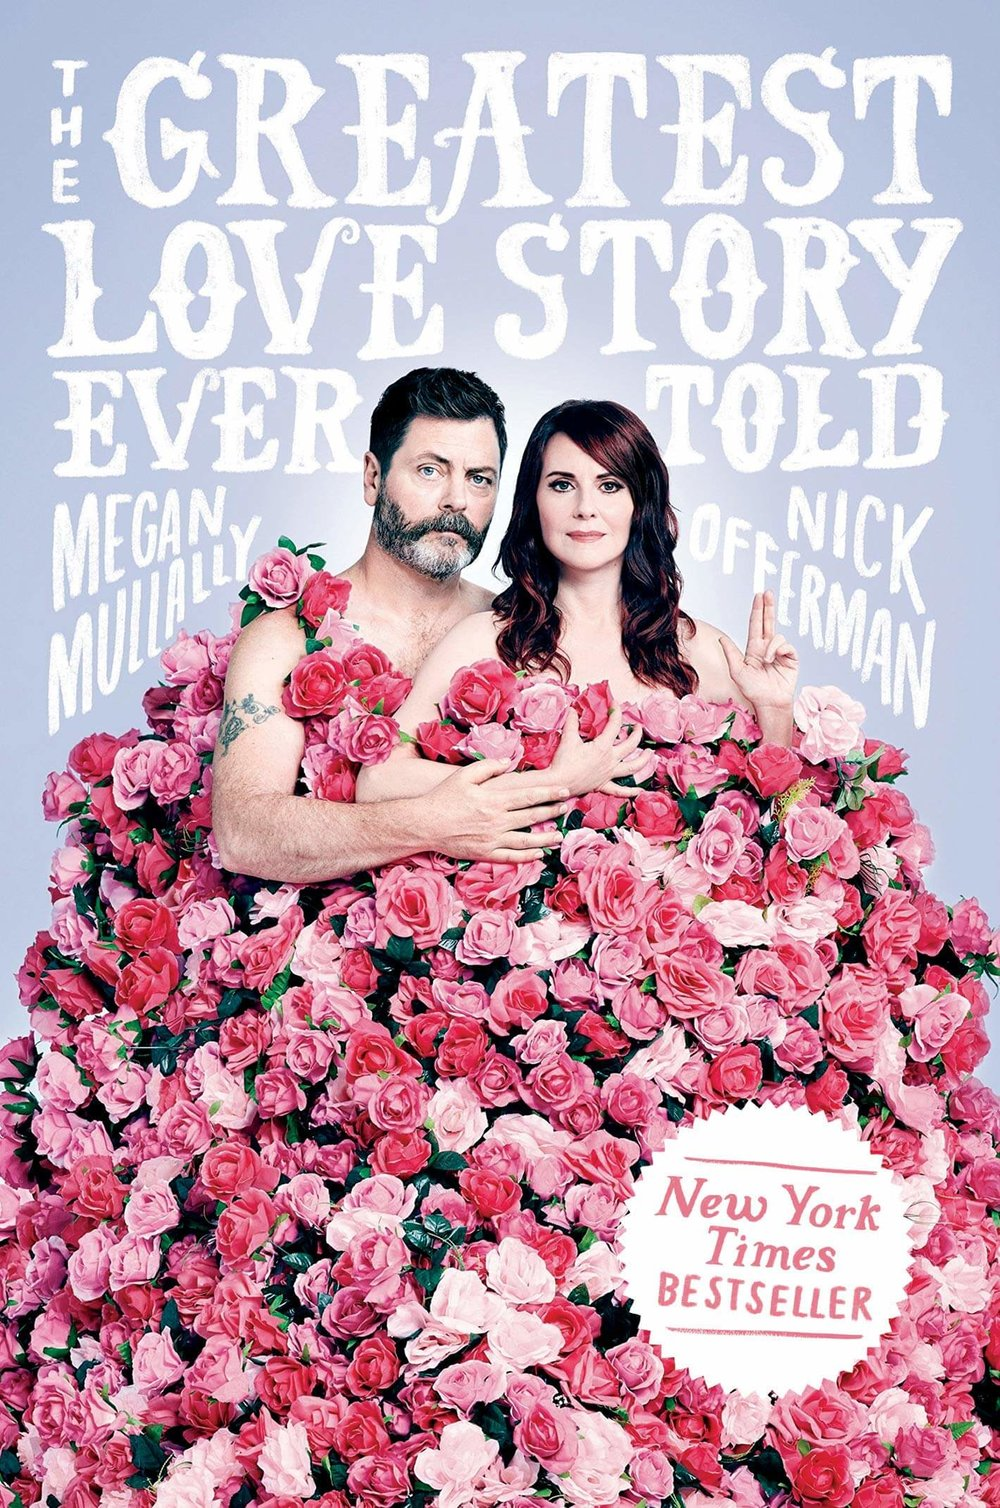 The Greatest Love Story Ever Told: An Oral History by Megan Mullally and Nick Offerman    Valentines Day Gift Guide Ideas for Men, women, friends, animal lovers, dog lovers, kitchen, bath, makeup, house and home.